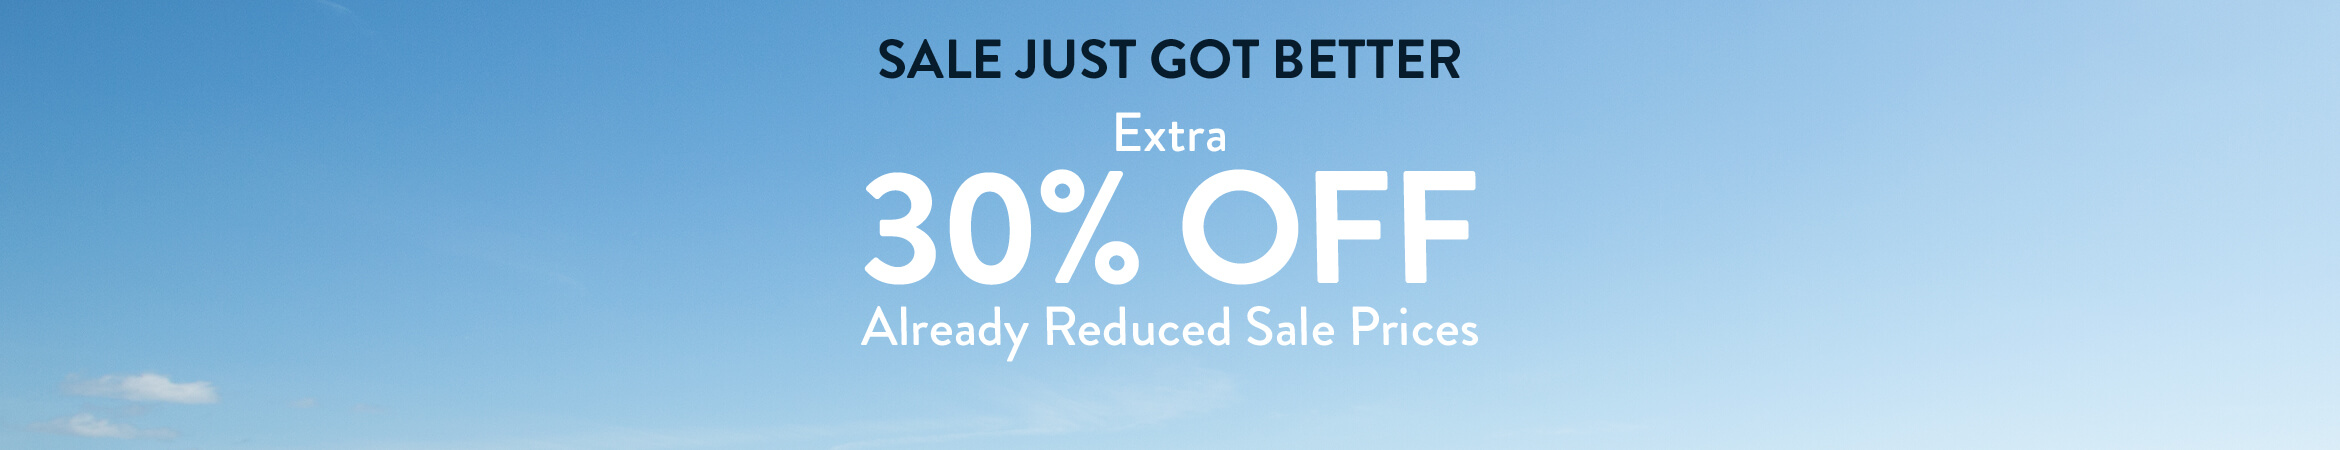 Sale just got better. Extra 30% off already reduced sale prices.